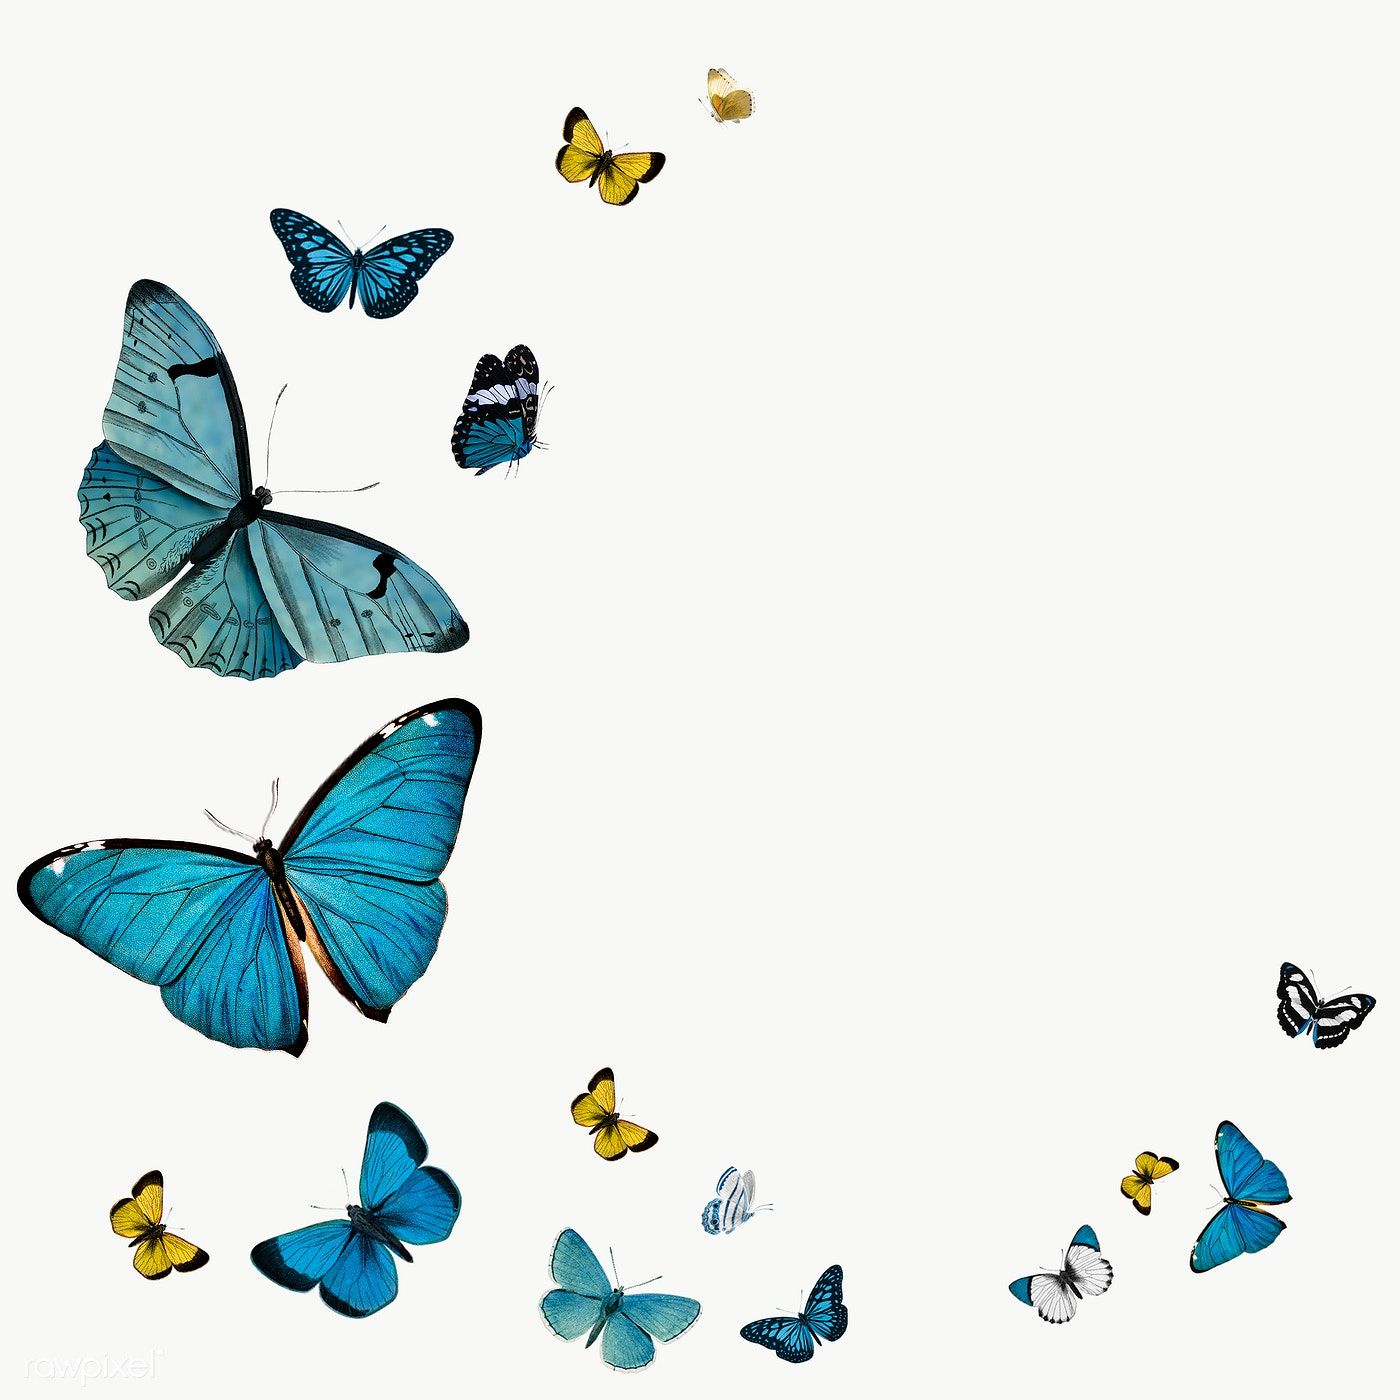 Download Premium Png Of Vintage Common Blue Butterflies With A Copy Space Butterfly Illustration Common Blue Butterfly Blue Butterfly